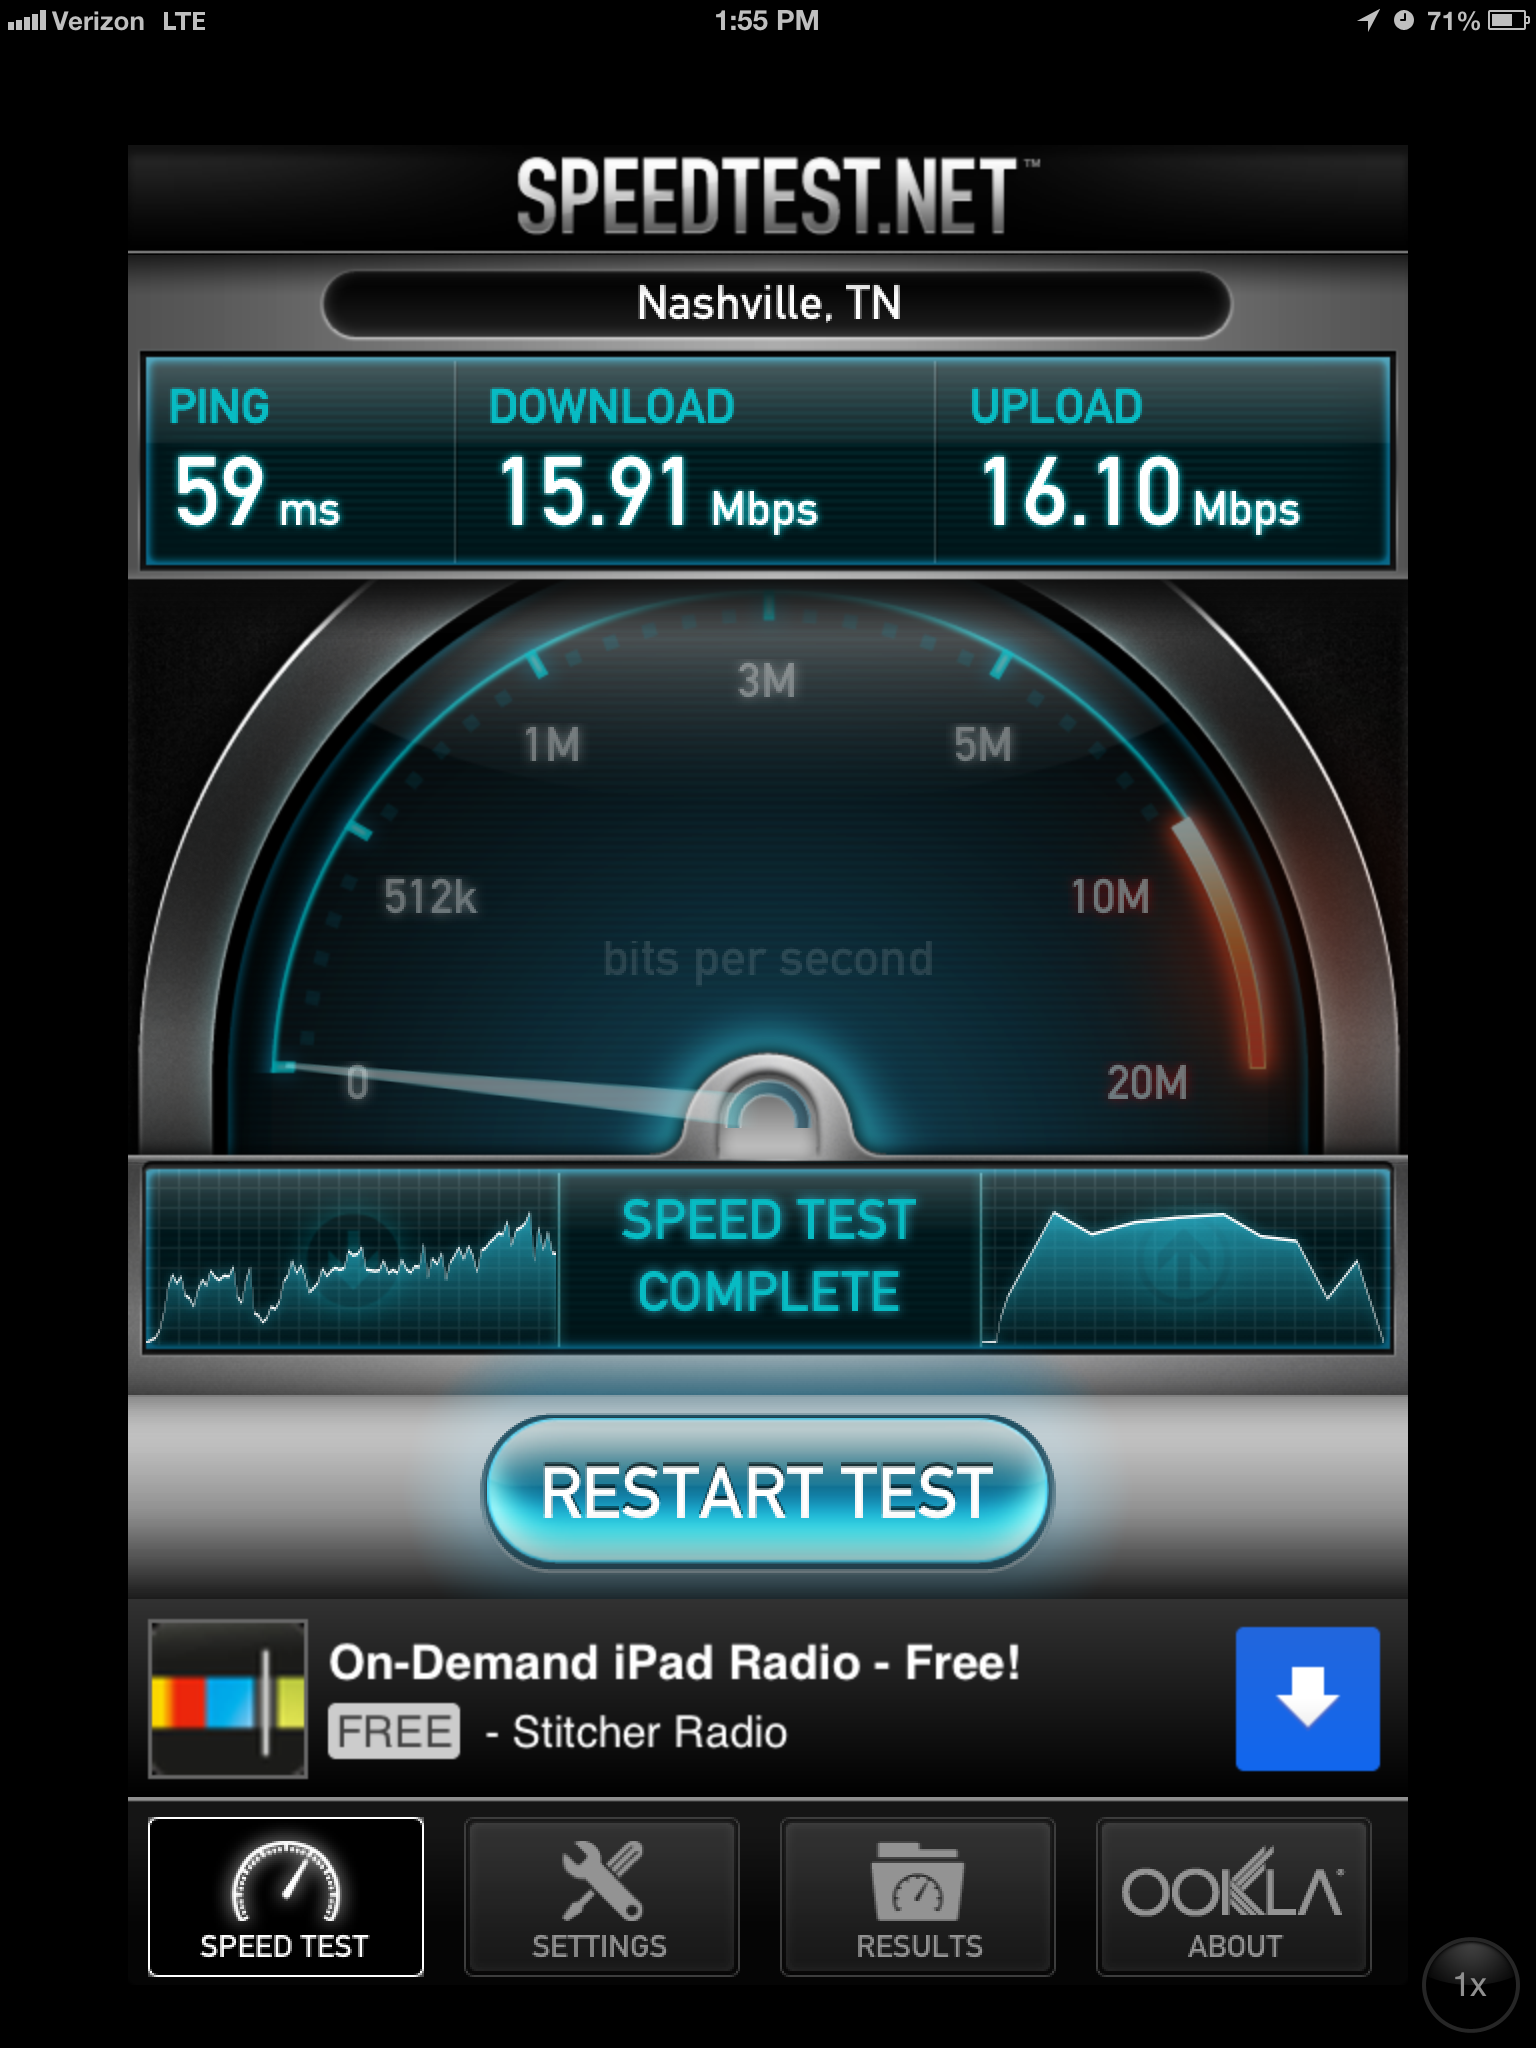 Speedtest on Verizon's LTE network showing 15.91mbps down and 16.10mbps up